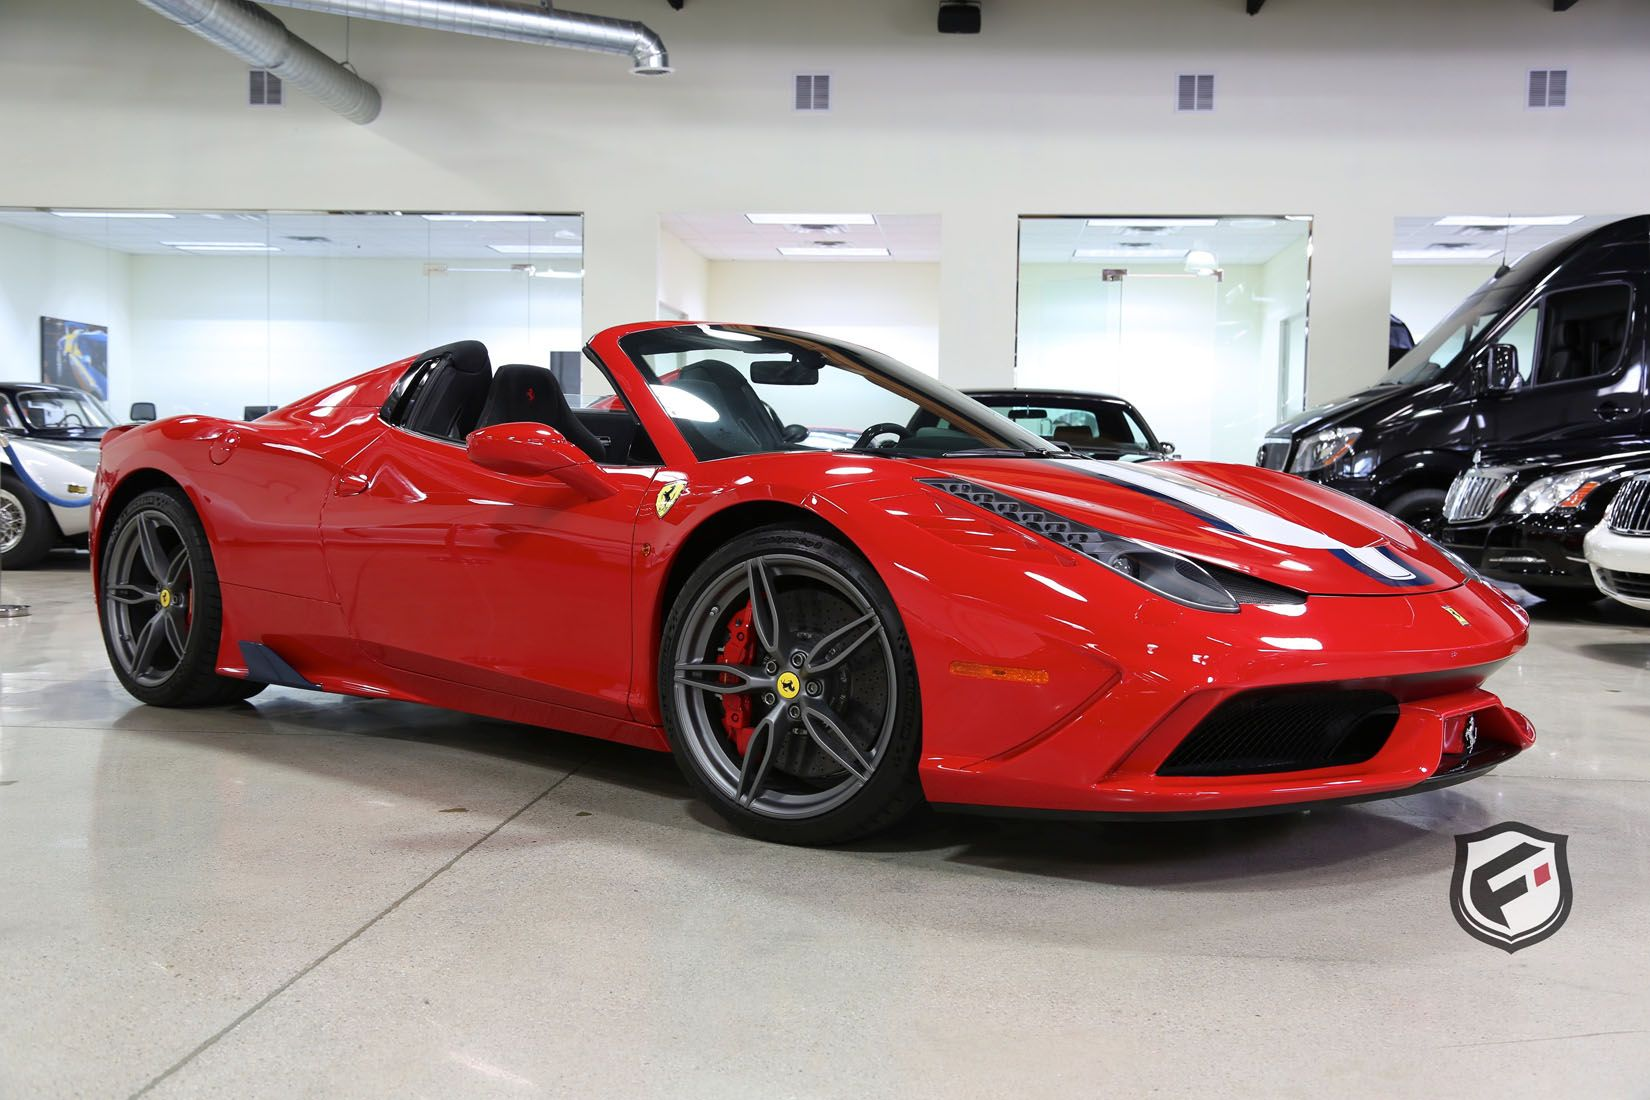 2015 Ferrari 458 Speciale Aperta Fusion Luxury Motors United States For Sale On Luxurypulse Ferrari 458 Ferrari Shopping